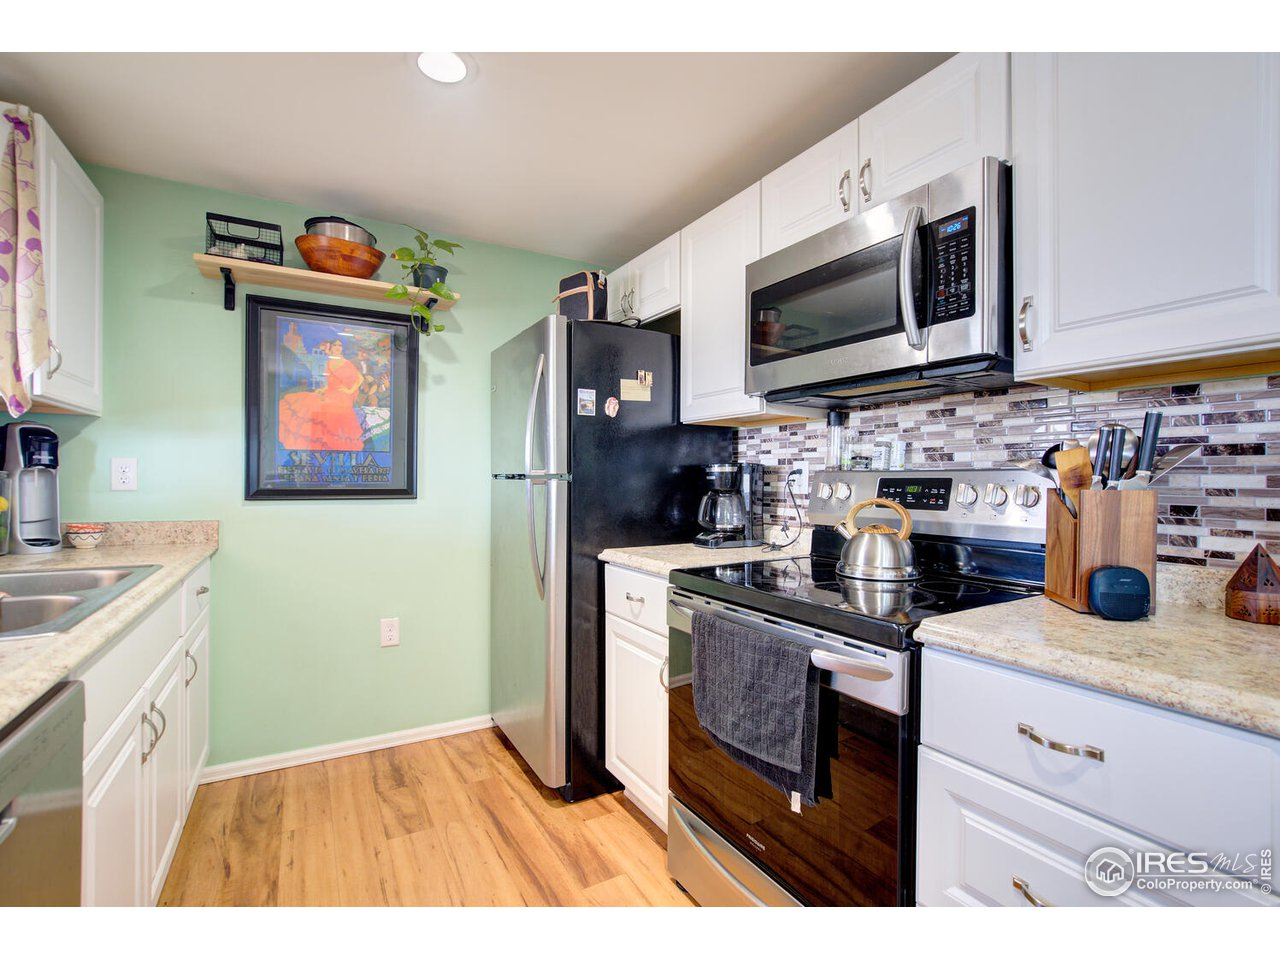 10 x 8 full kitchen, all appliances included.